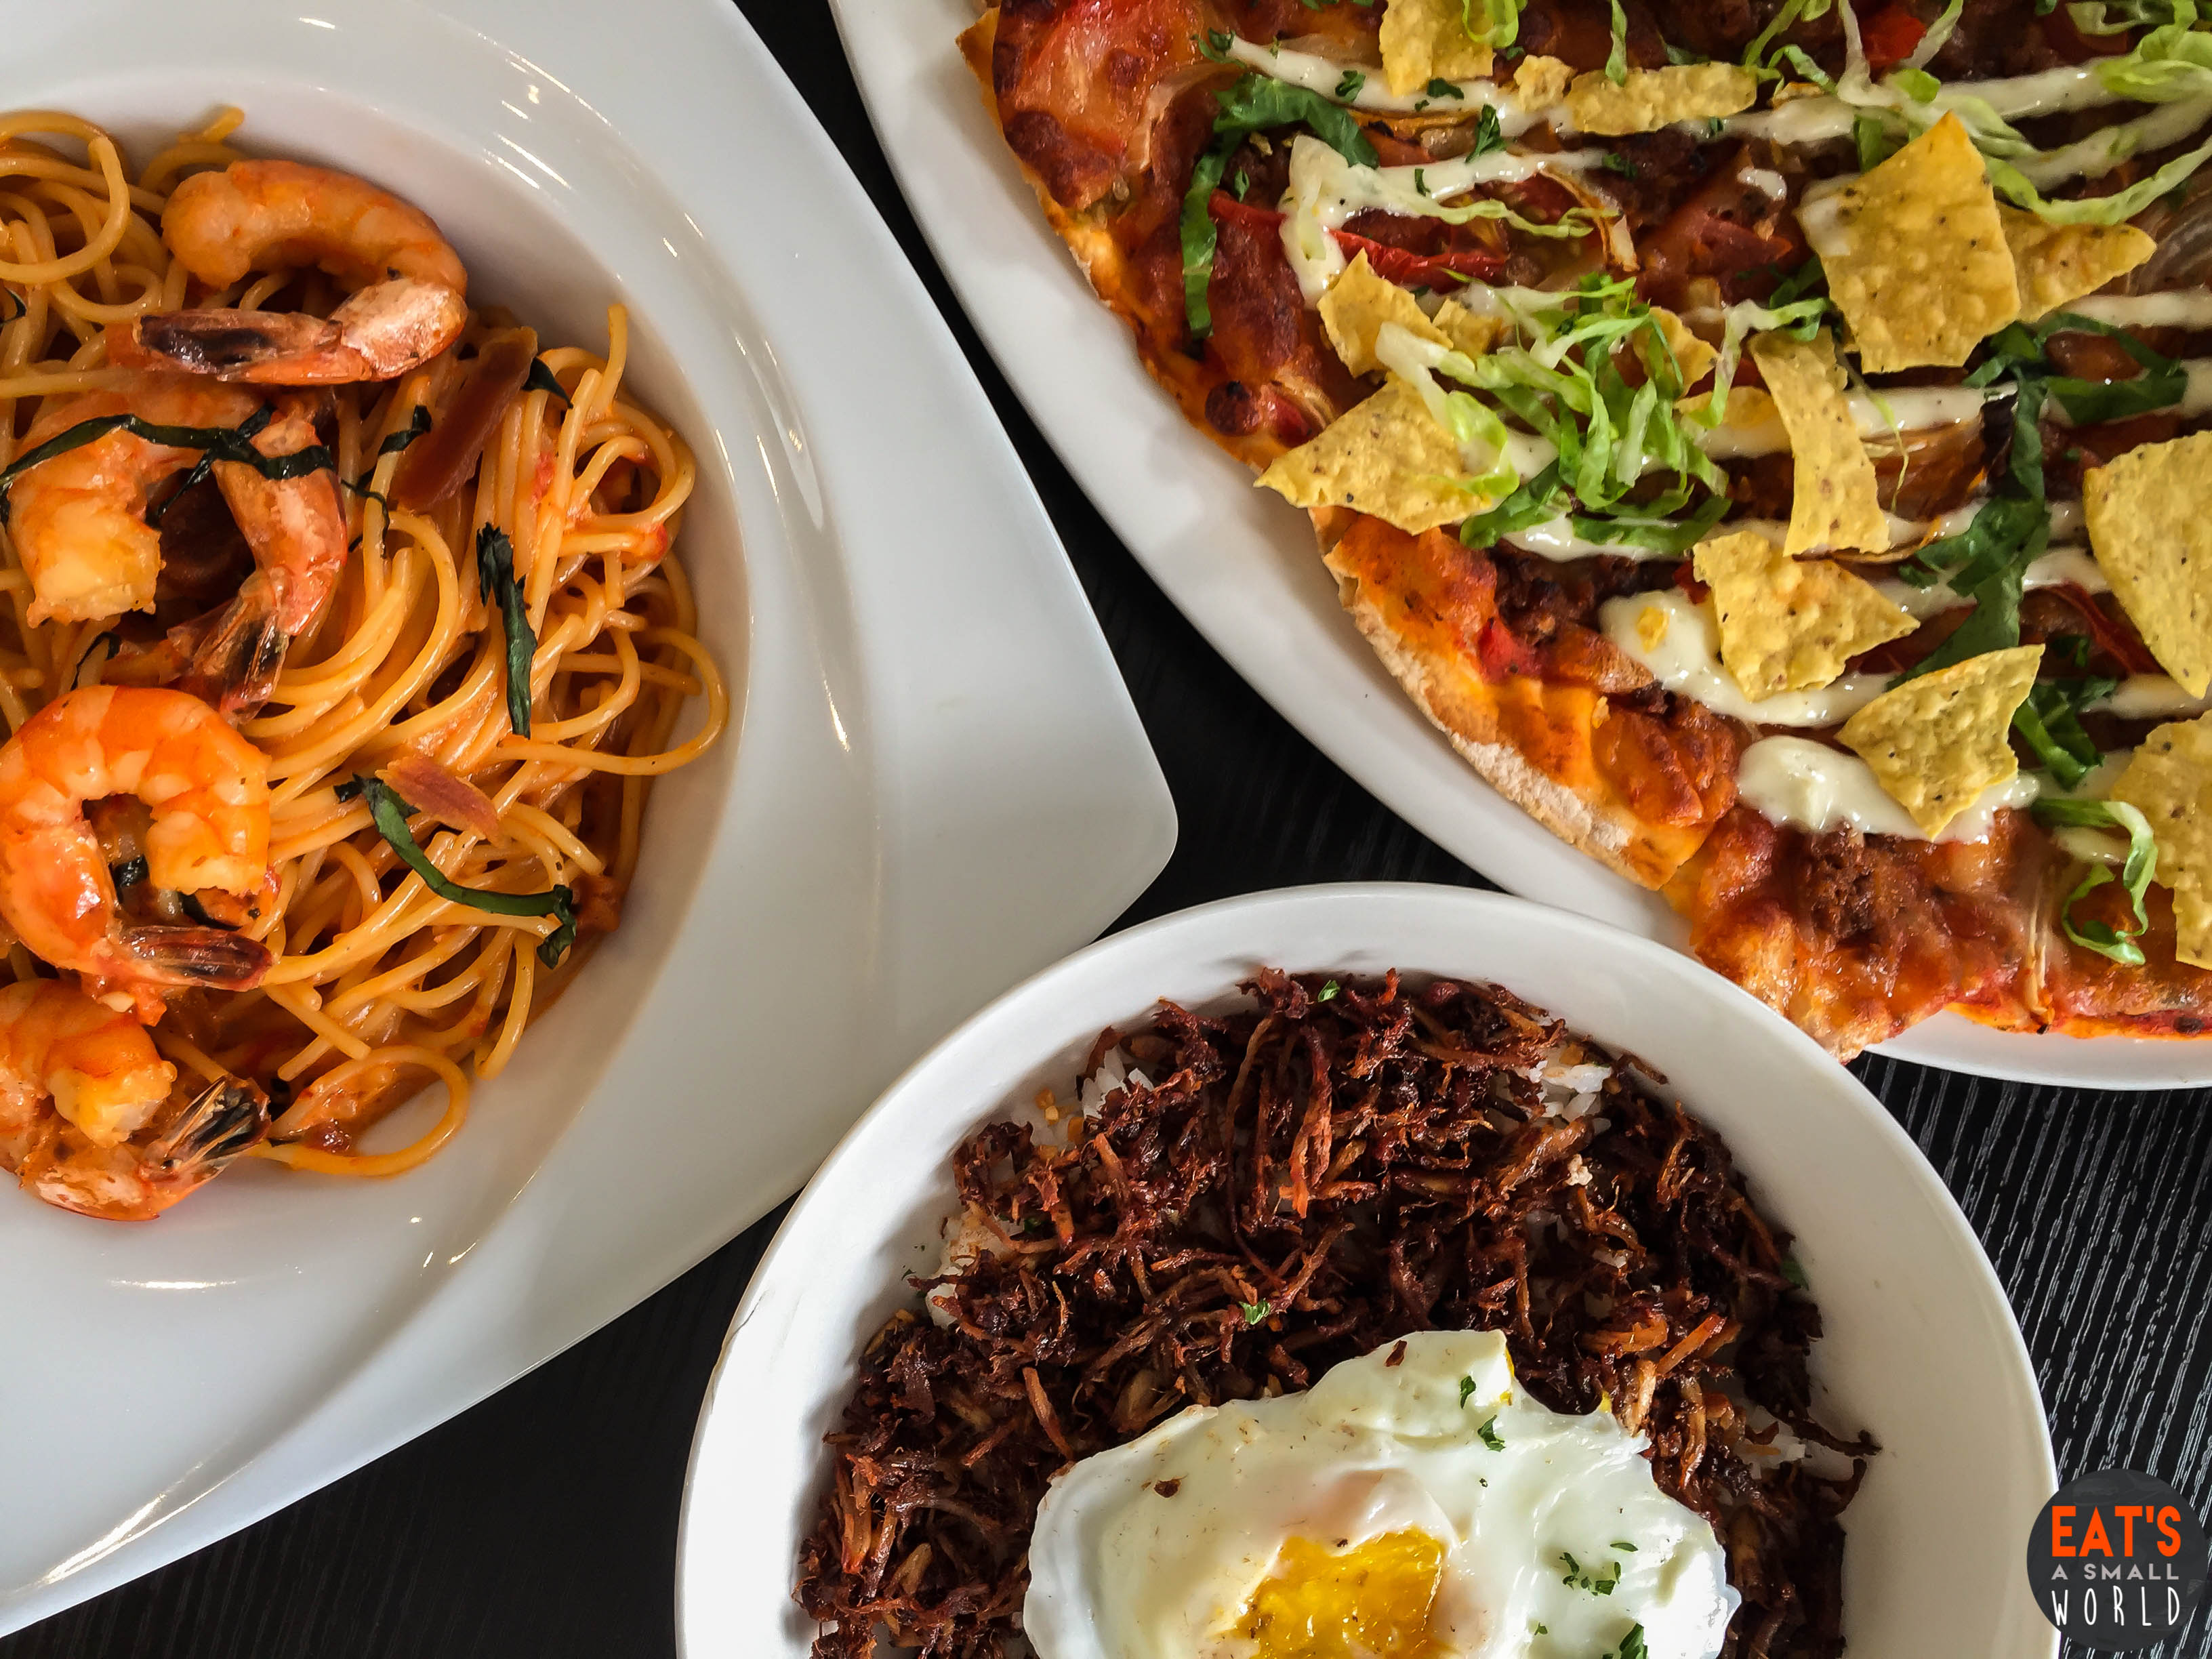 Selected Restaurants on EATIGO Will Offer 50% off ALL DAY on May 9!